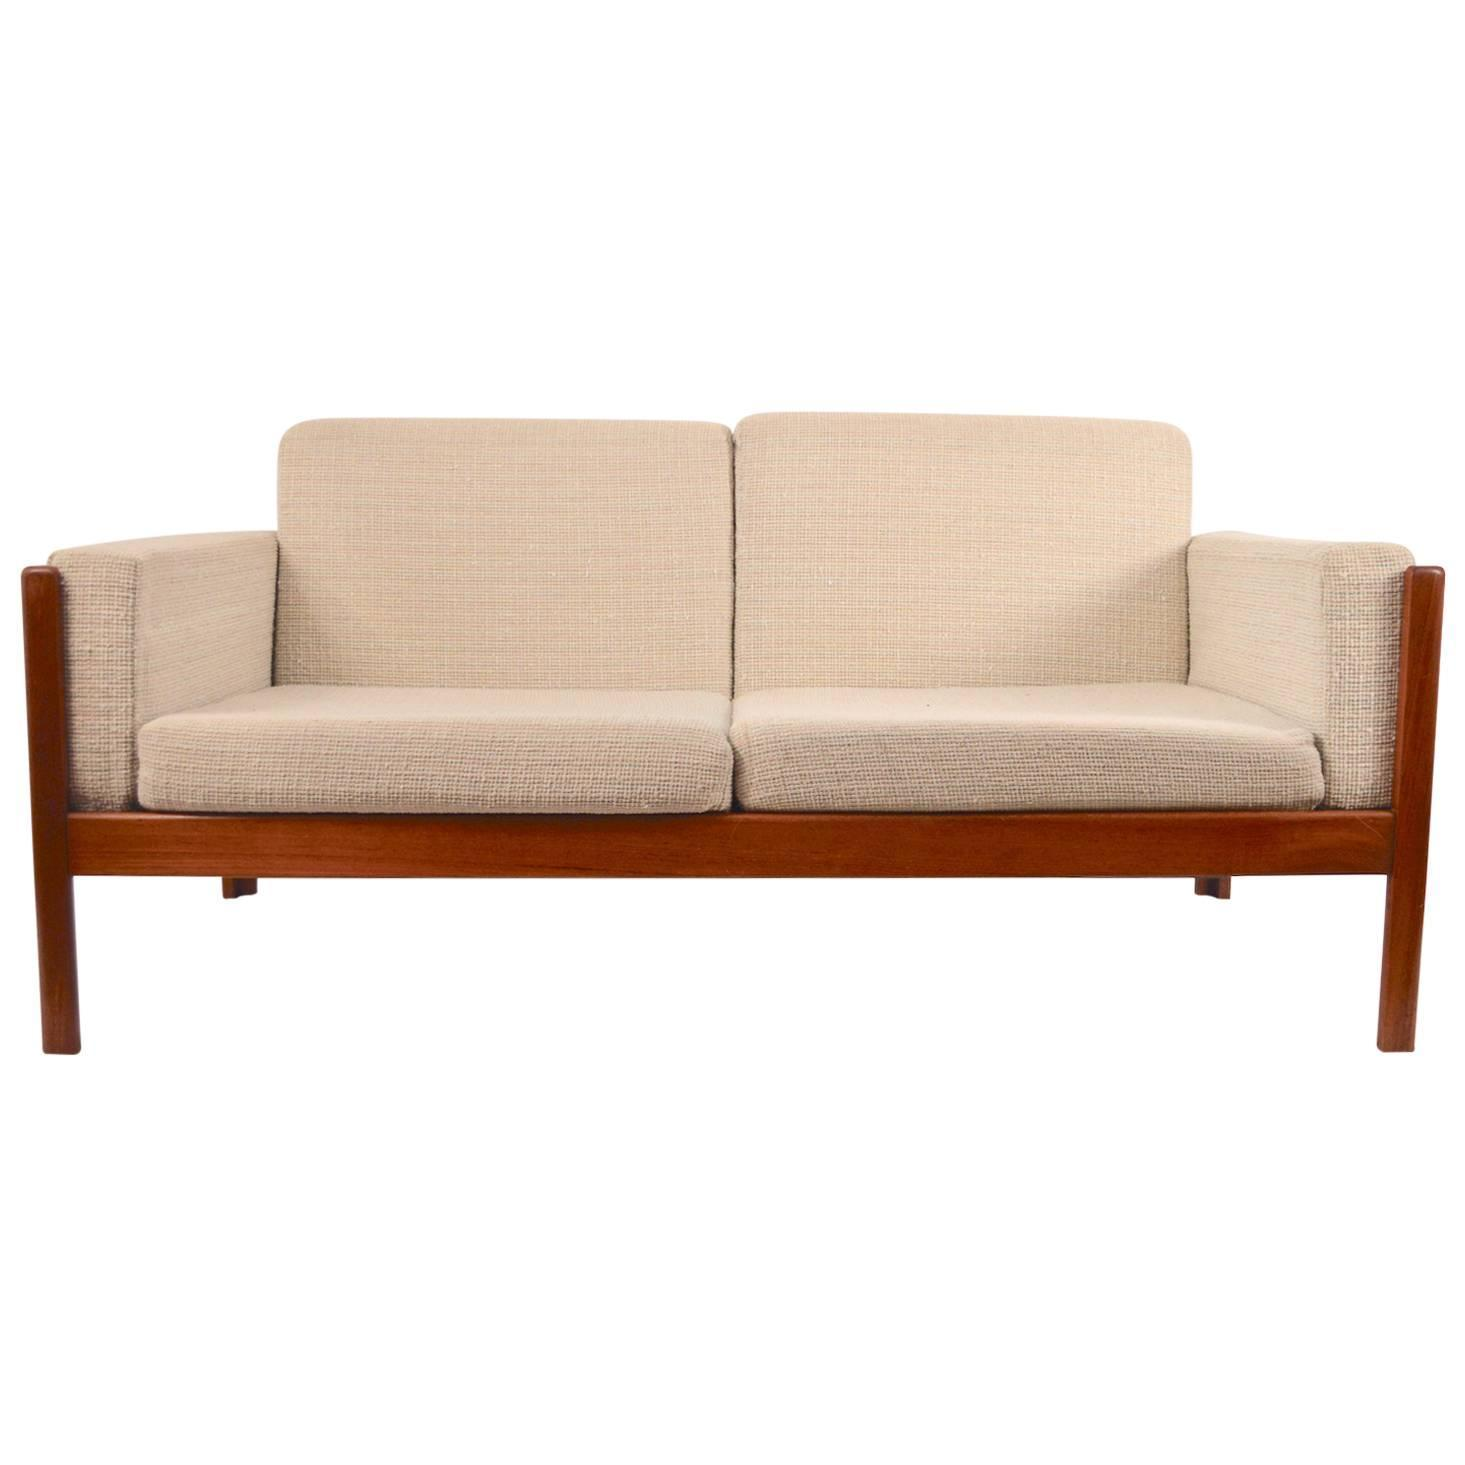 Danish Modern Loveseat By Westnofa For Sale At 1stdibs